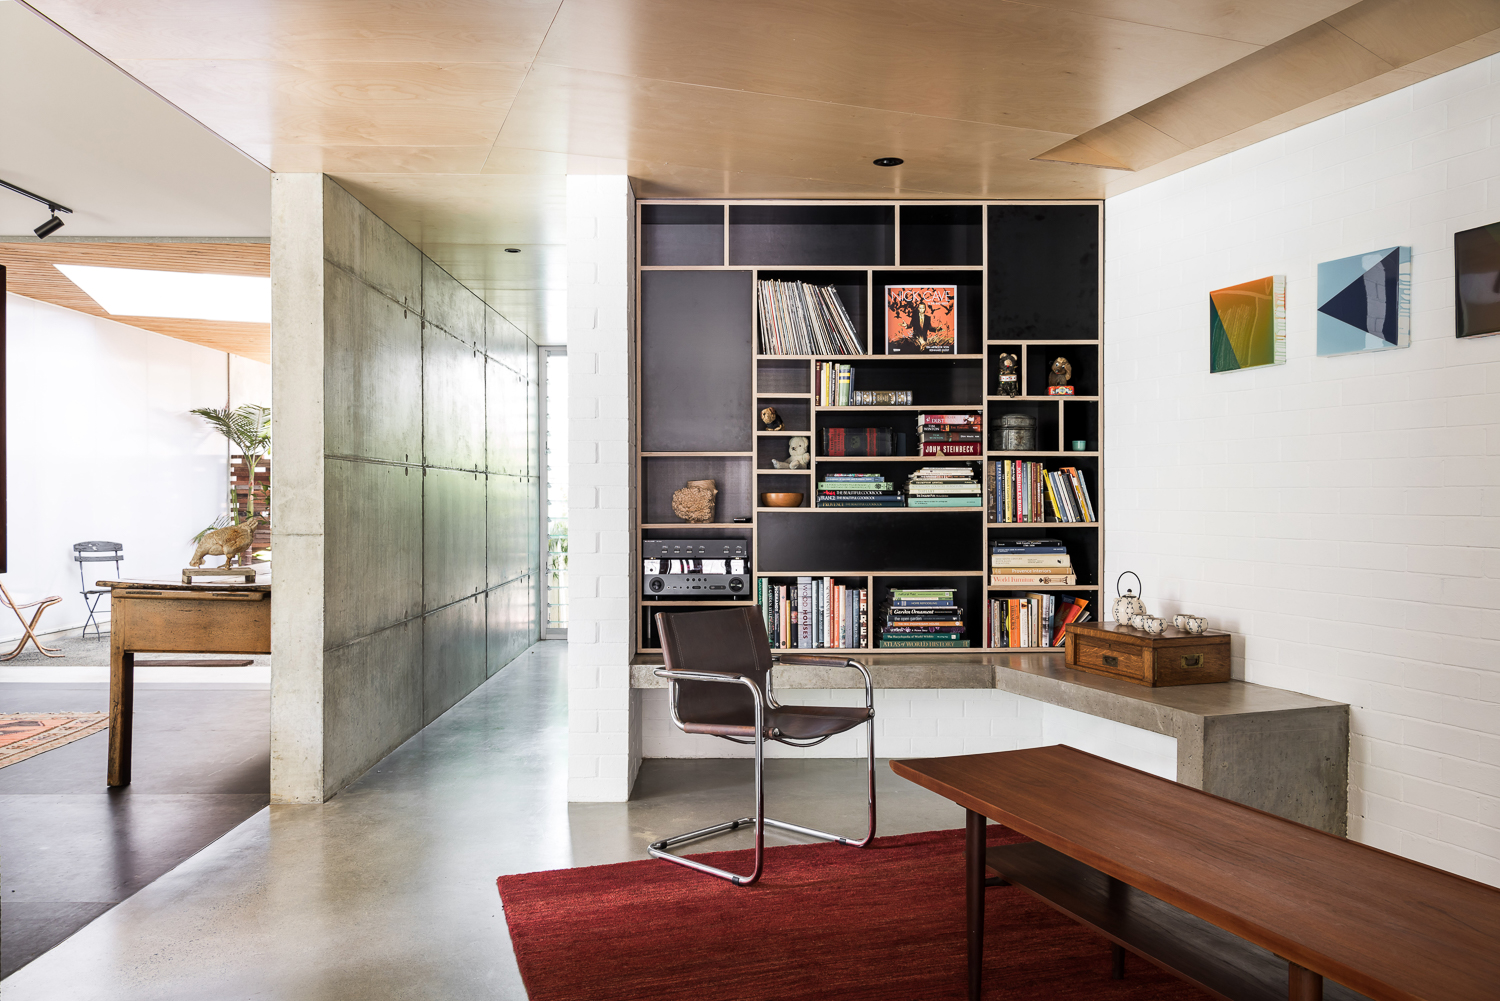 Gallery Of Silver Street House By Ehdo Architecture Local Design And Interiors South Fremantle, Wa Image 8